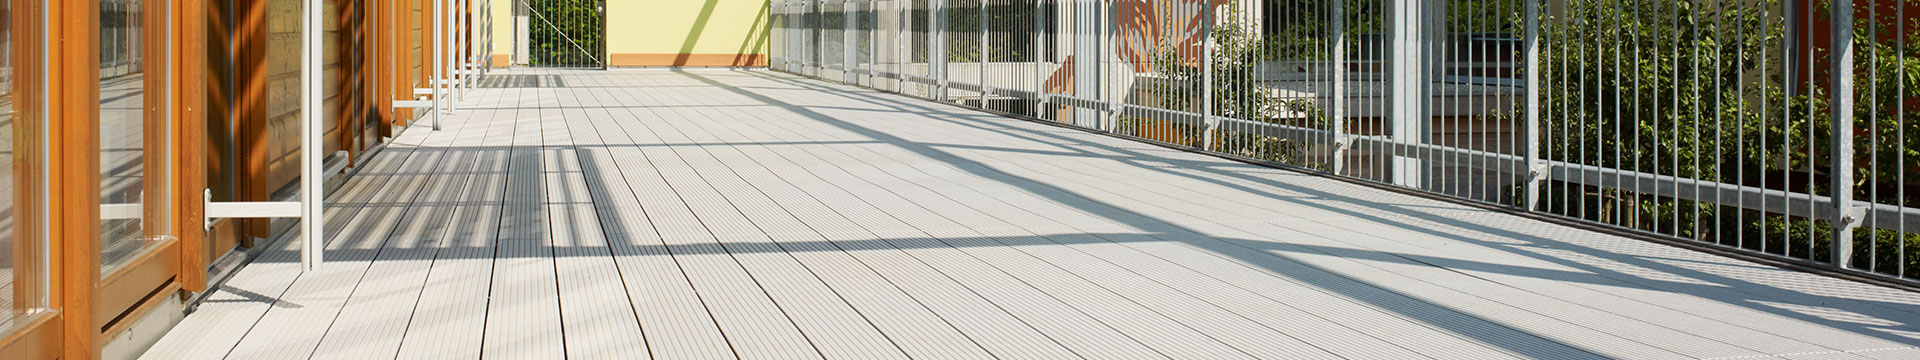 Composite decking with unique stain resistance surface